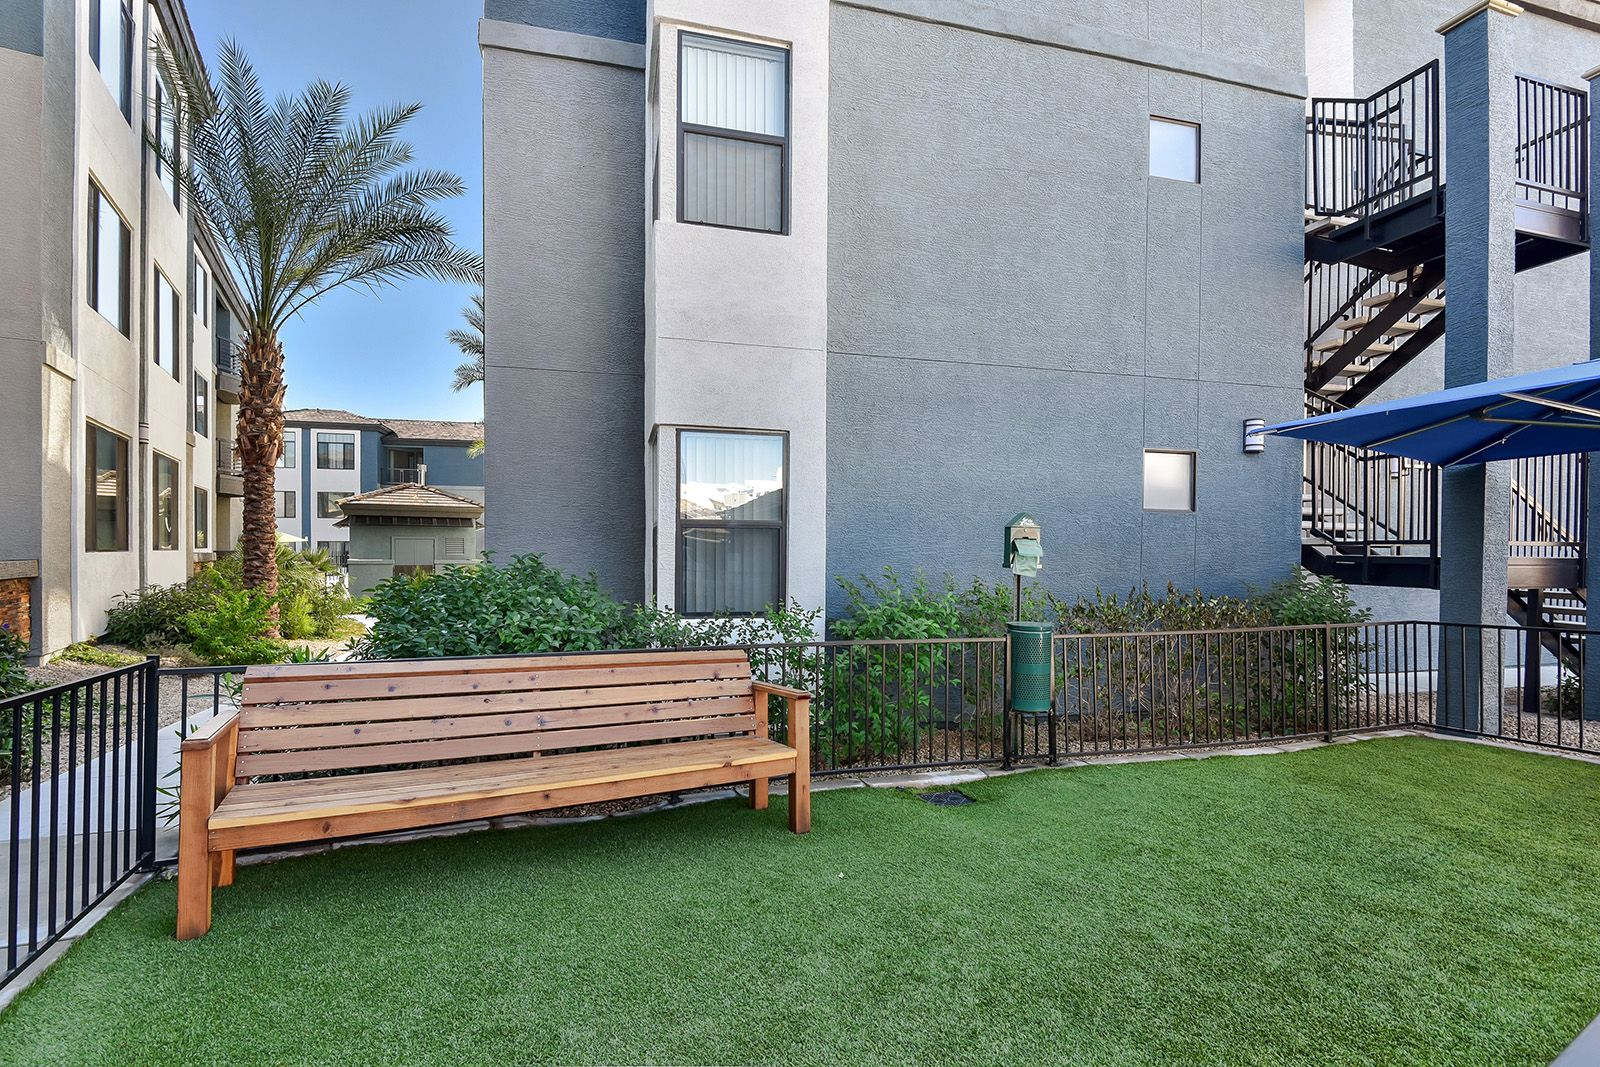 Your Pup Will Love Our Little Dog Park Perfect For Making All The Puppy Friends Arrivenor Pet Friendly Apartments Luxury Apartments Apartment Communities